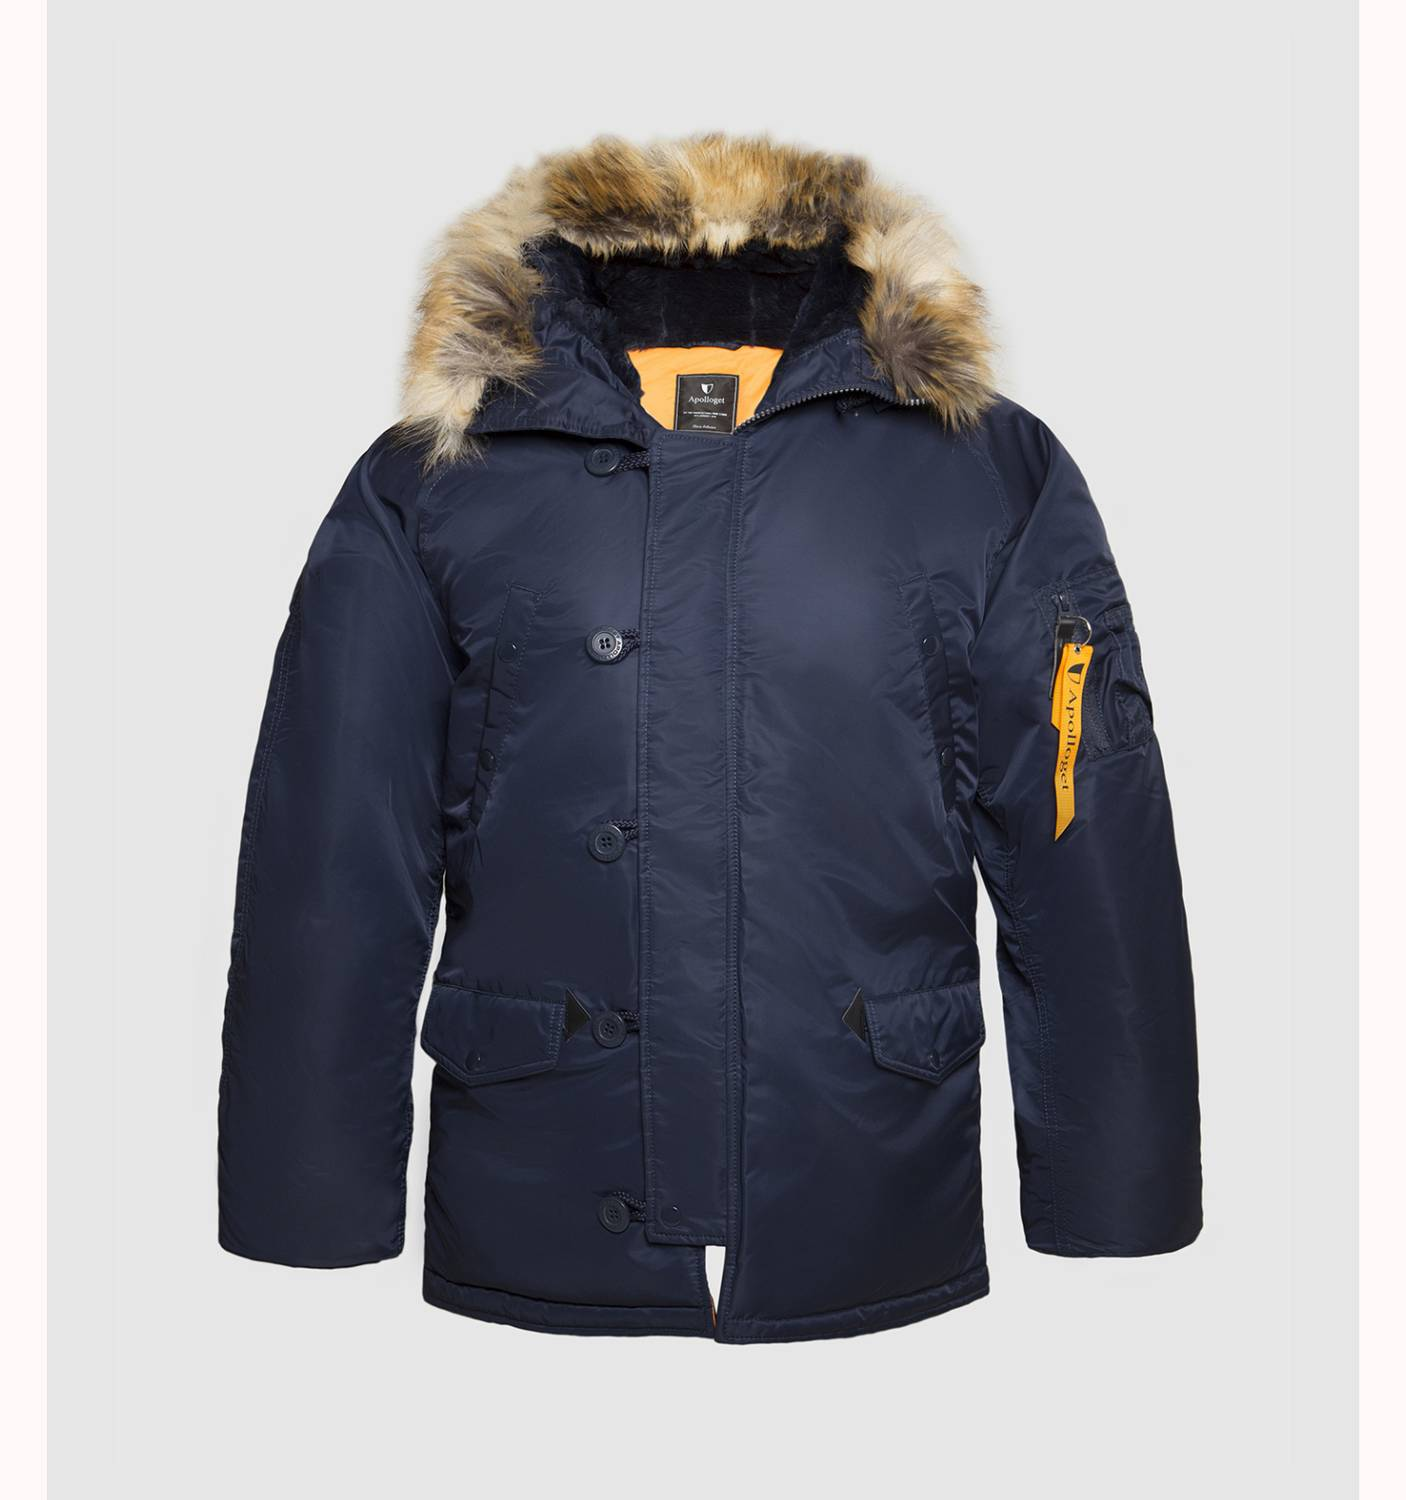 Куртка мужская Apolloget HUSKY REGULAR Rep. Blue / Orange